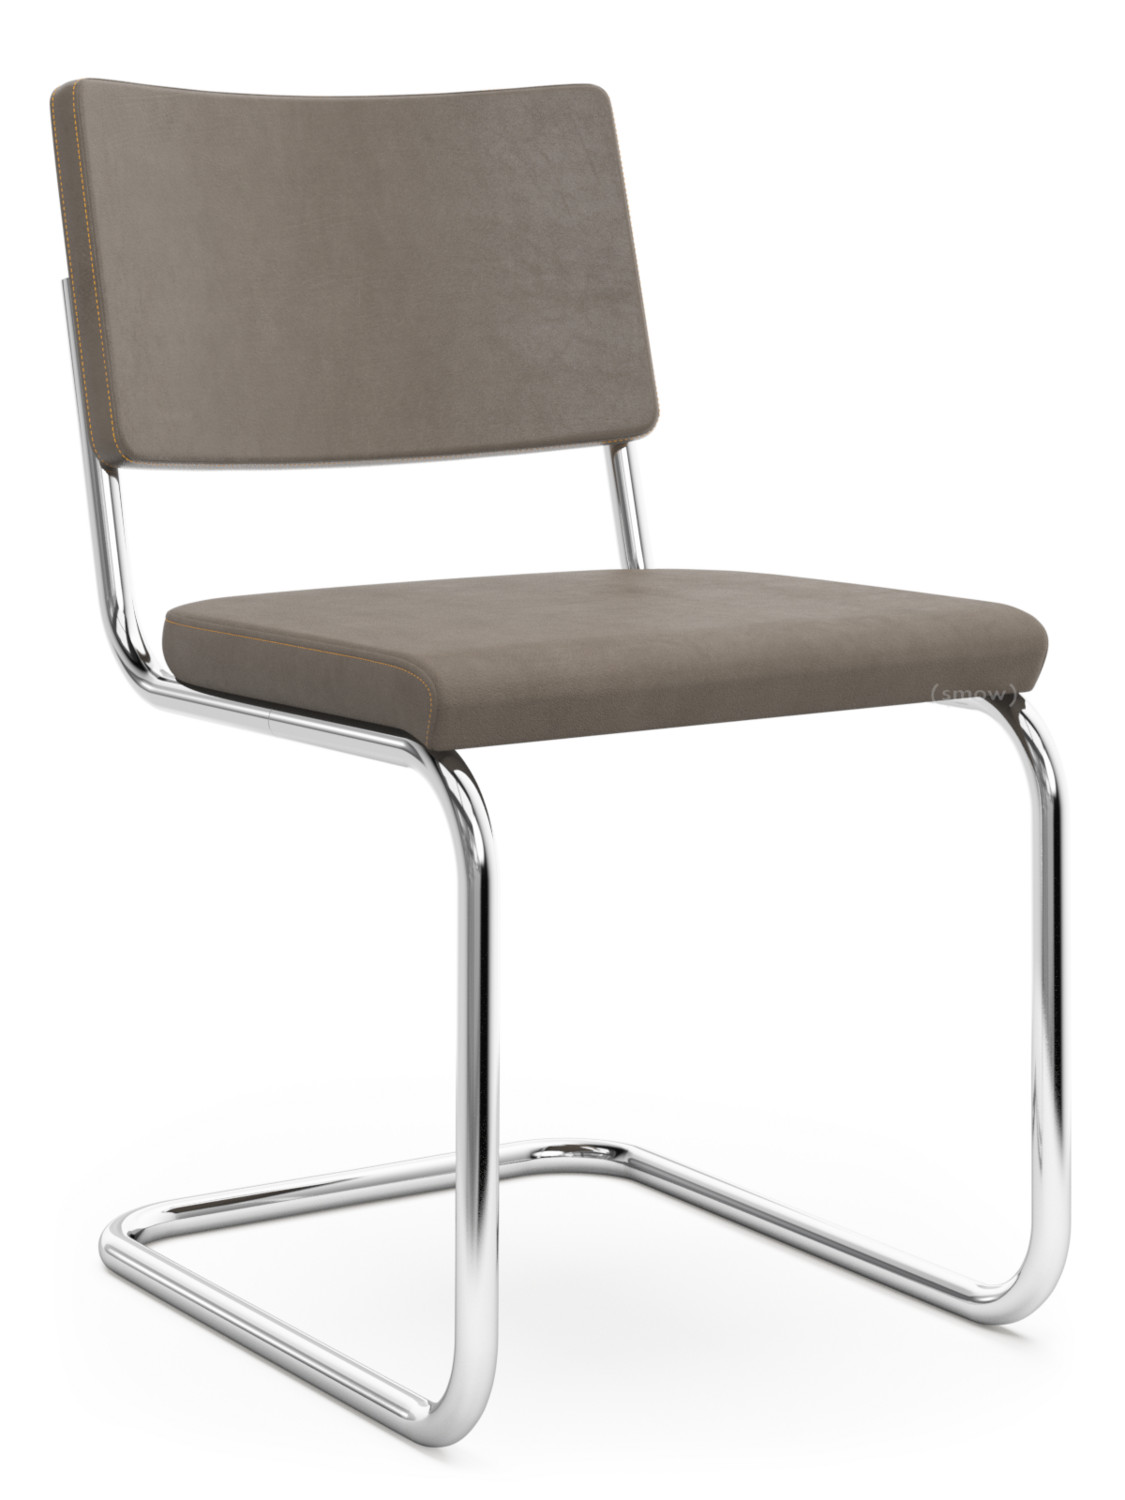 Thonet S32 Thonet S 32 Pv S 64 Pv Pure Materials Nubuck Leather Mid Brown Chrome Plated Walnut Without Armrests